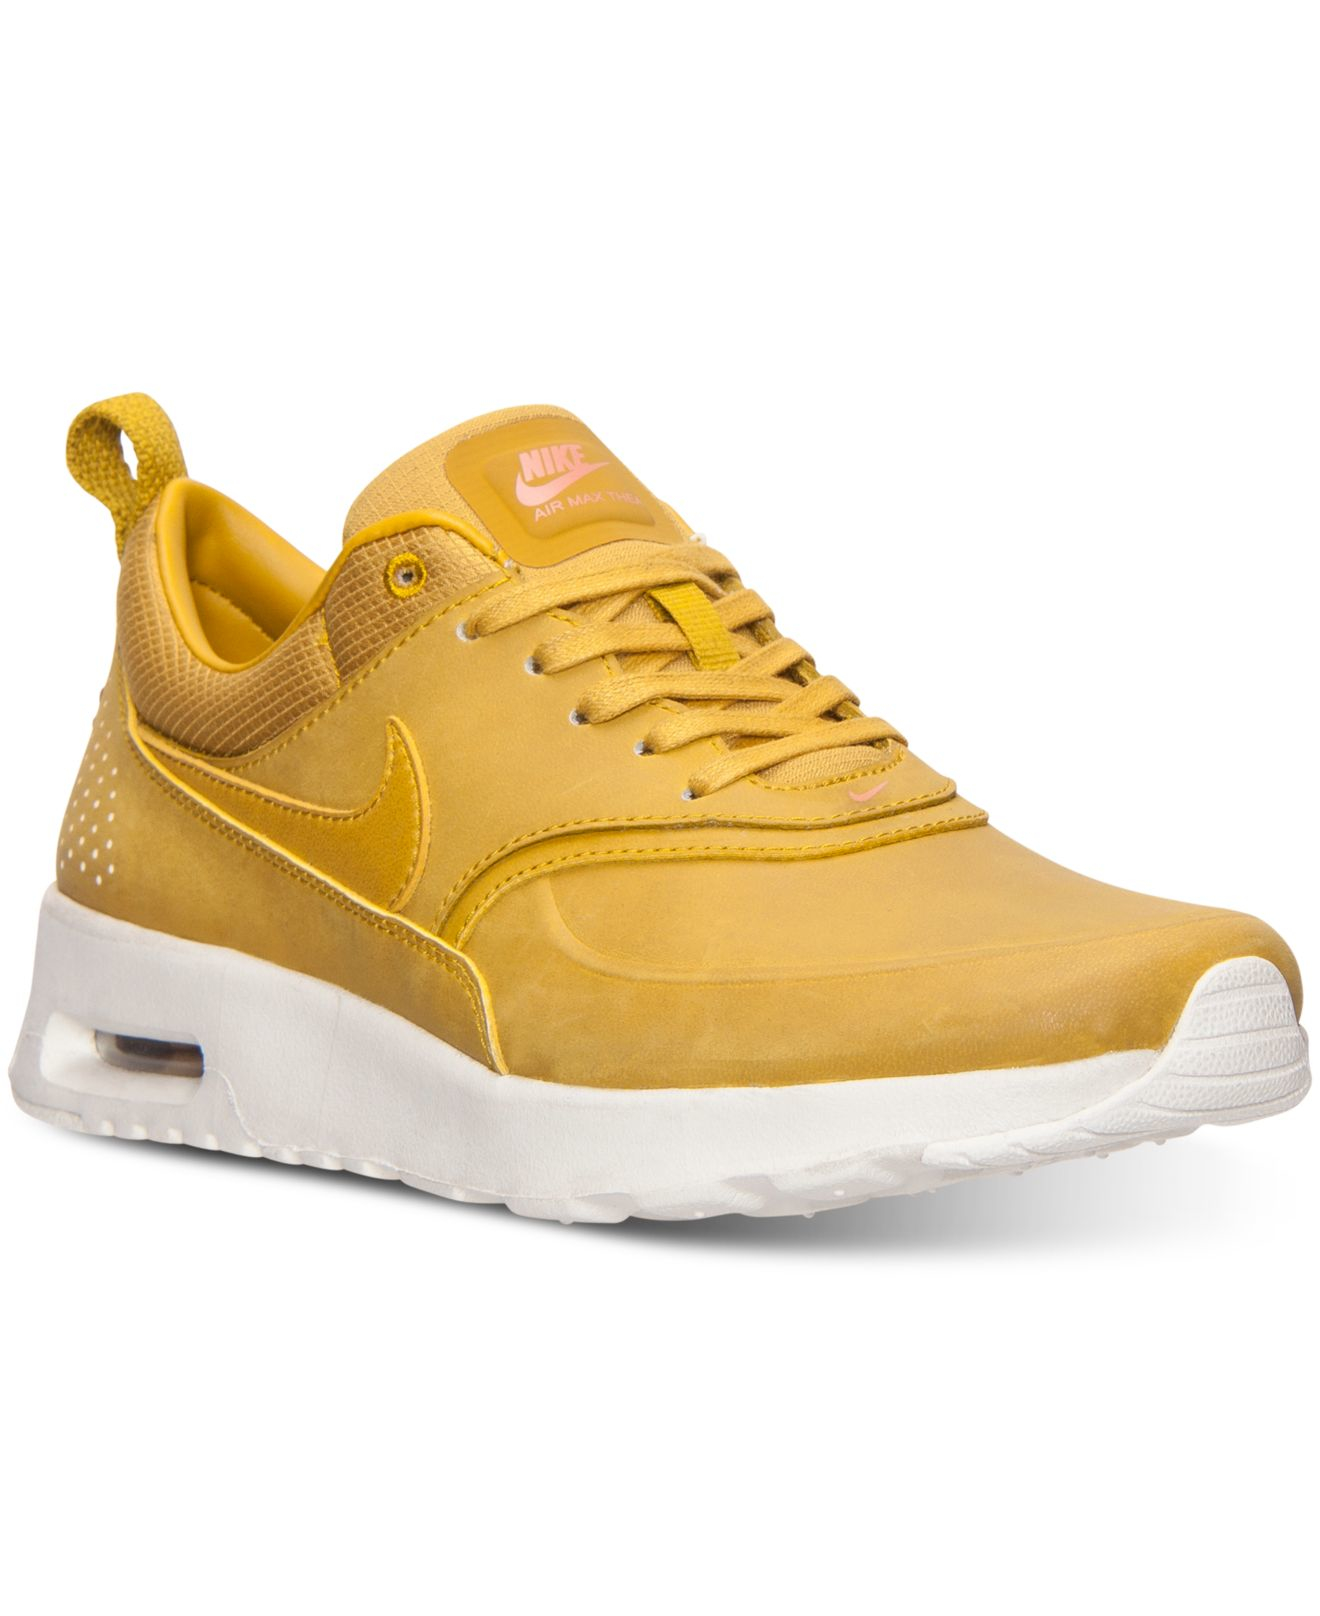 sale retailer b435e bf9a1 Nike Women s Air Max Thea Premium Running Sneakers From Finish Line ...